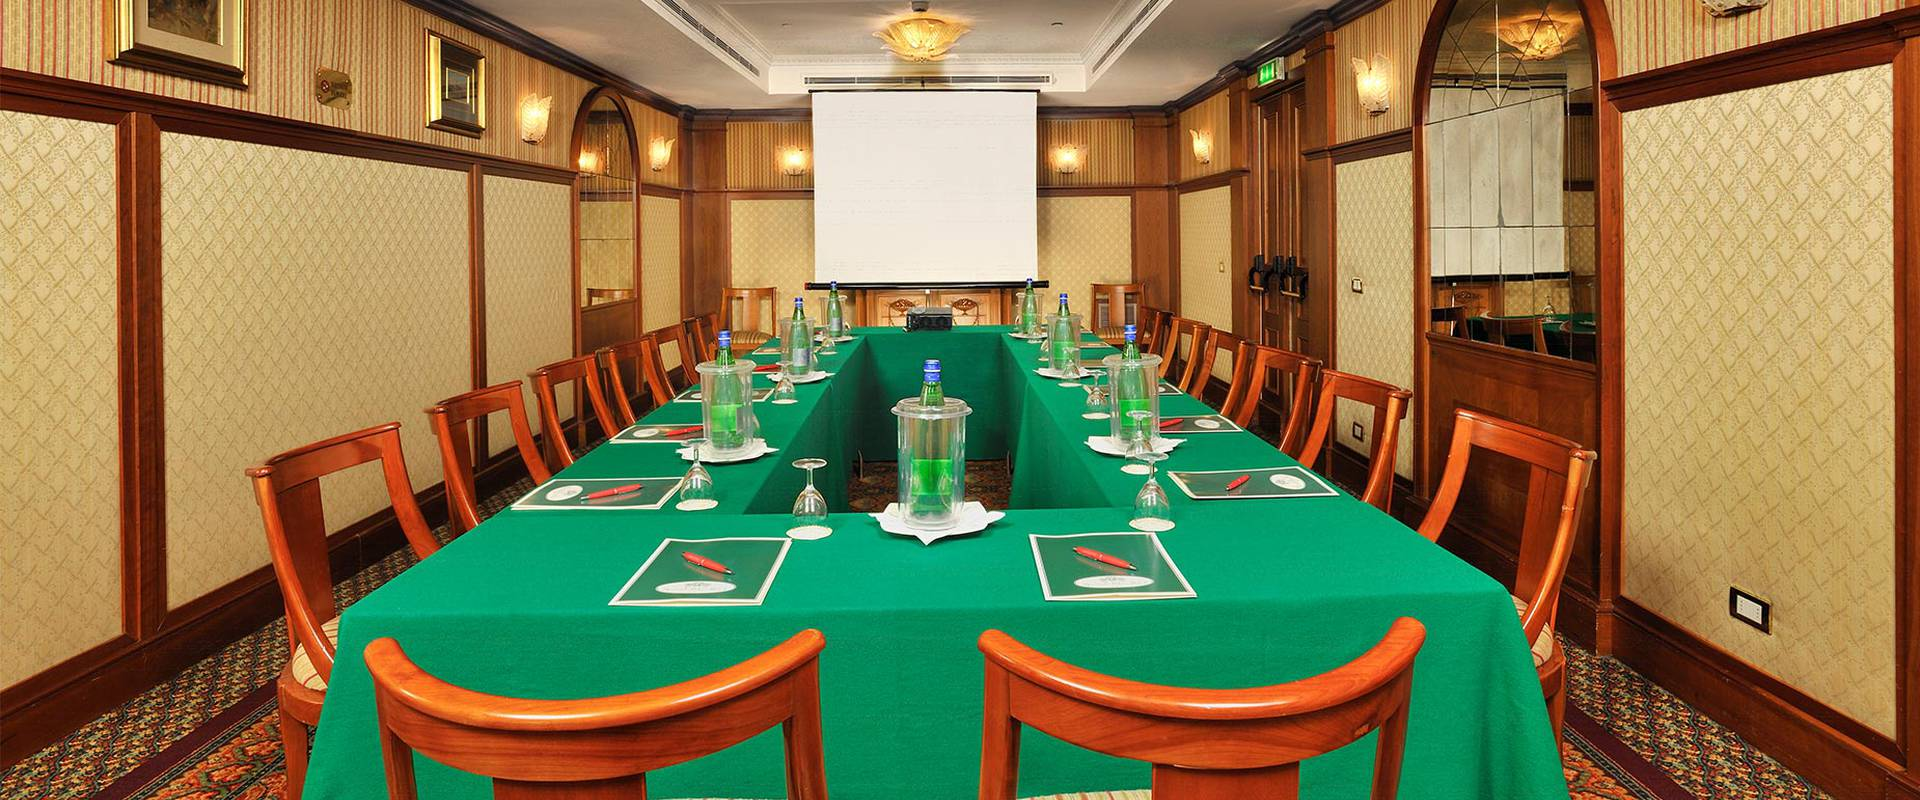 LIBERIANA MEETING ROOM Mecenate Palace Hotel Rome